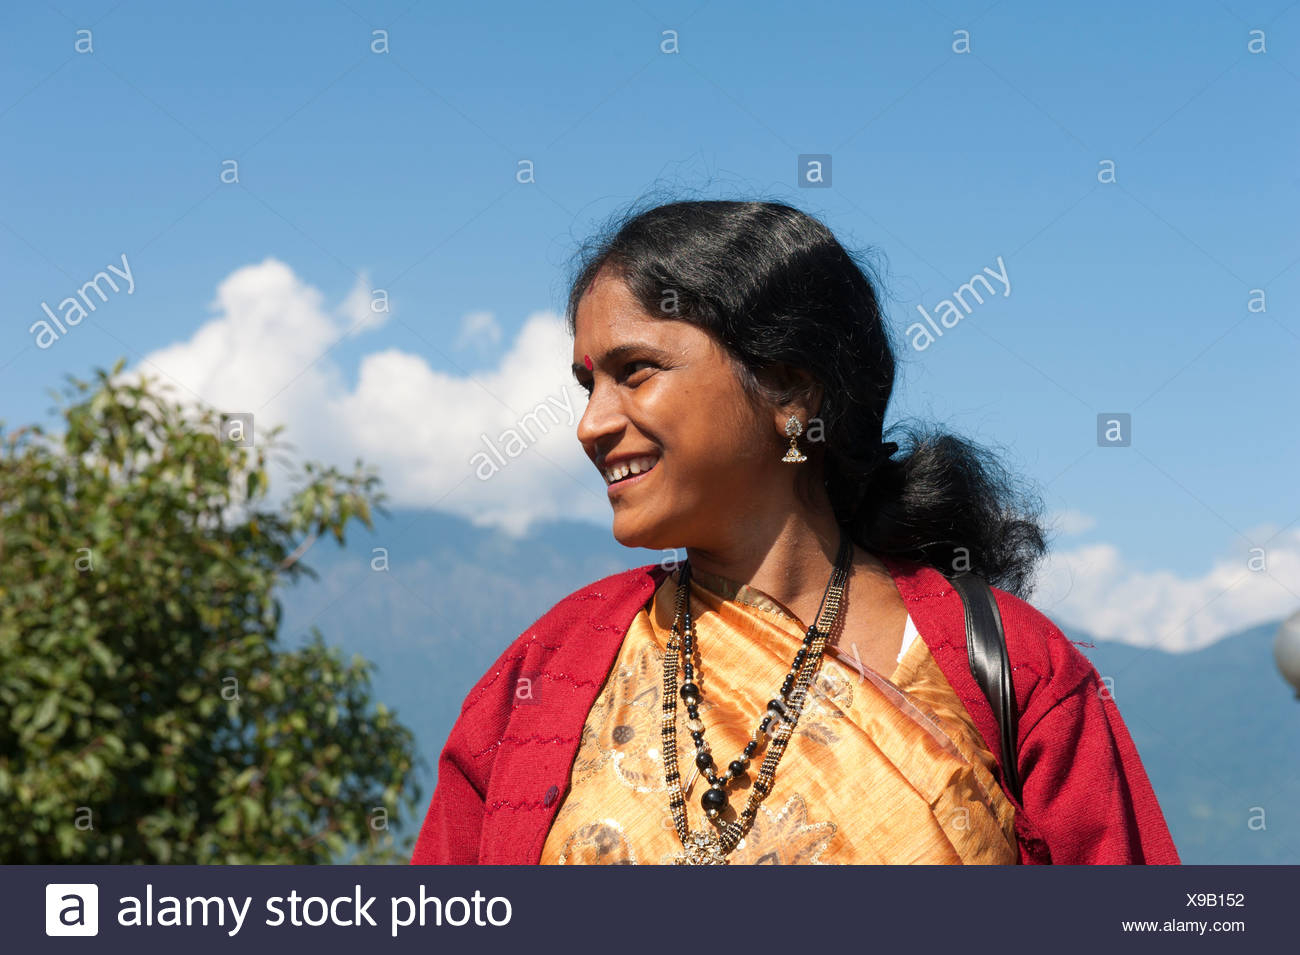 Indian woman smiling, portrait, Tashi, vue montagnes près de Gangtok, Sikkim, Himalaya, Inde, Asie du Sud, Asie Photo Stock